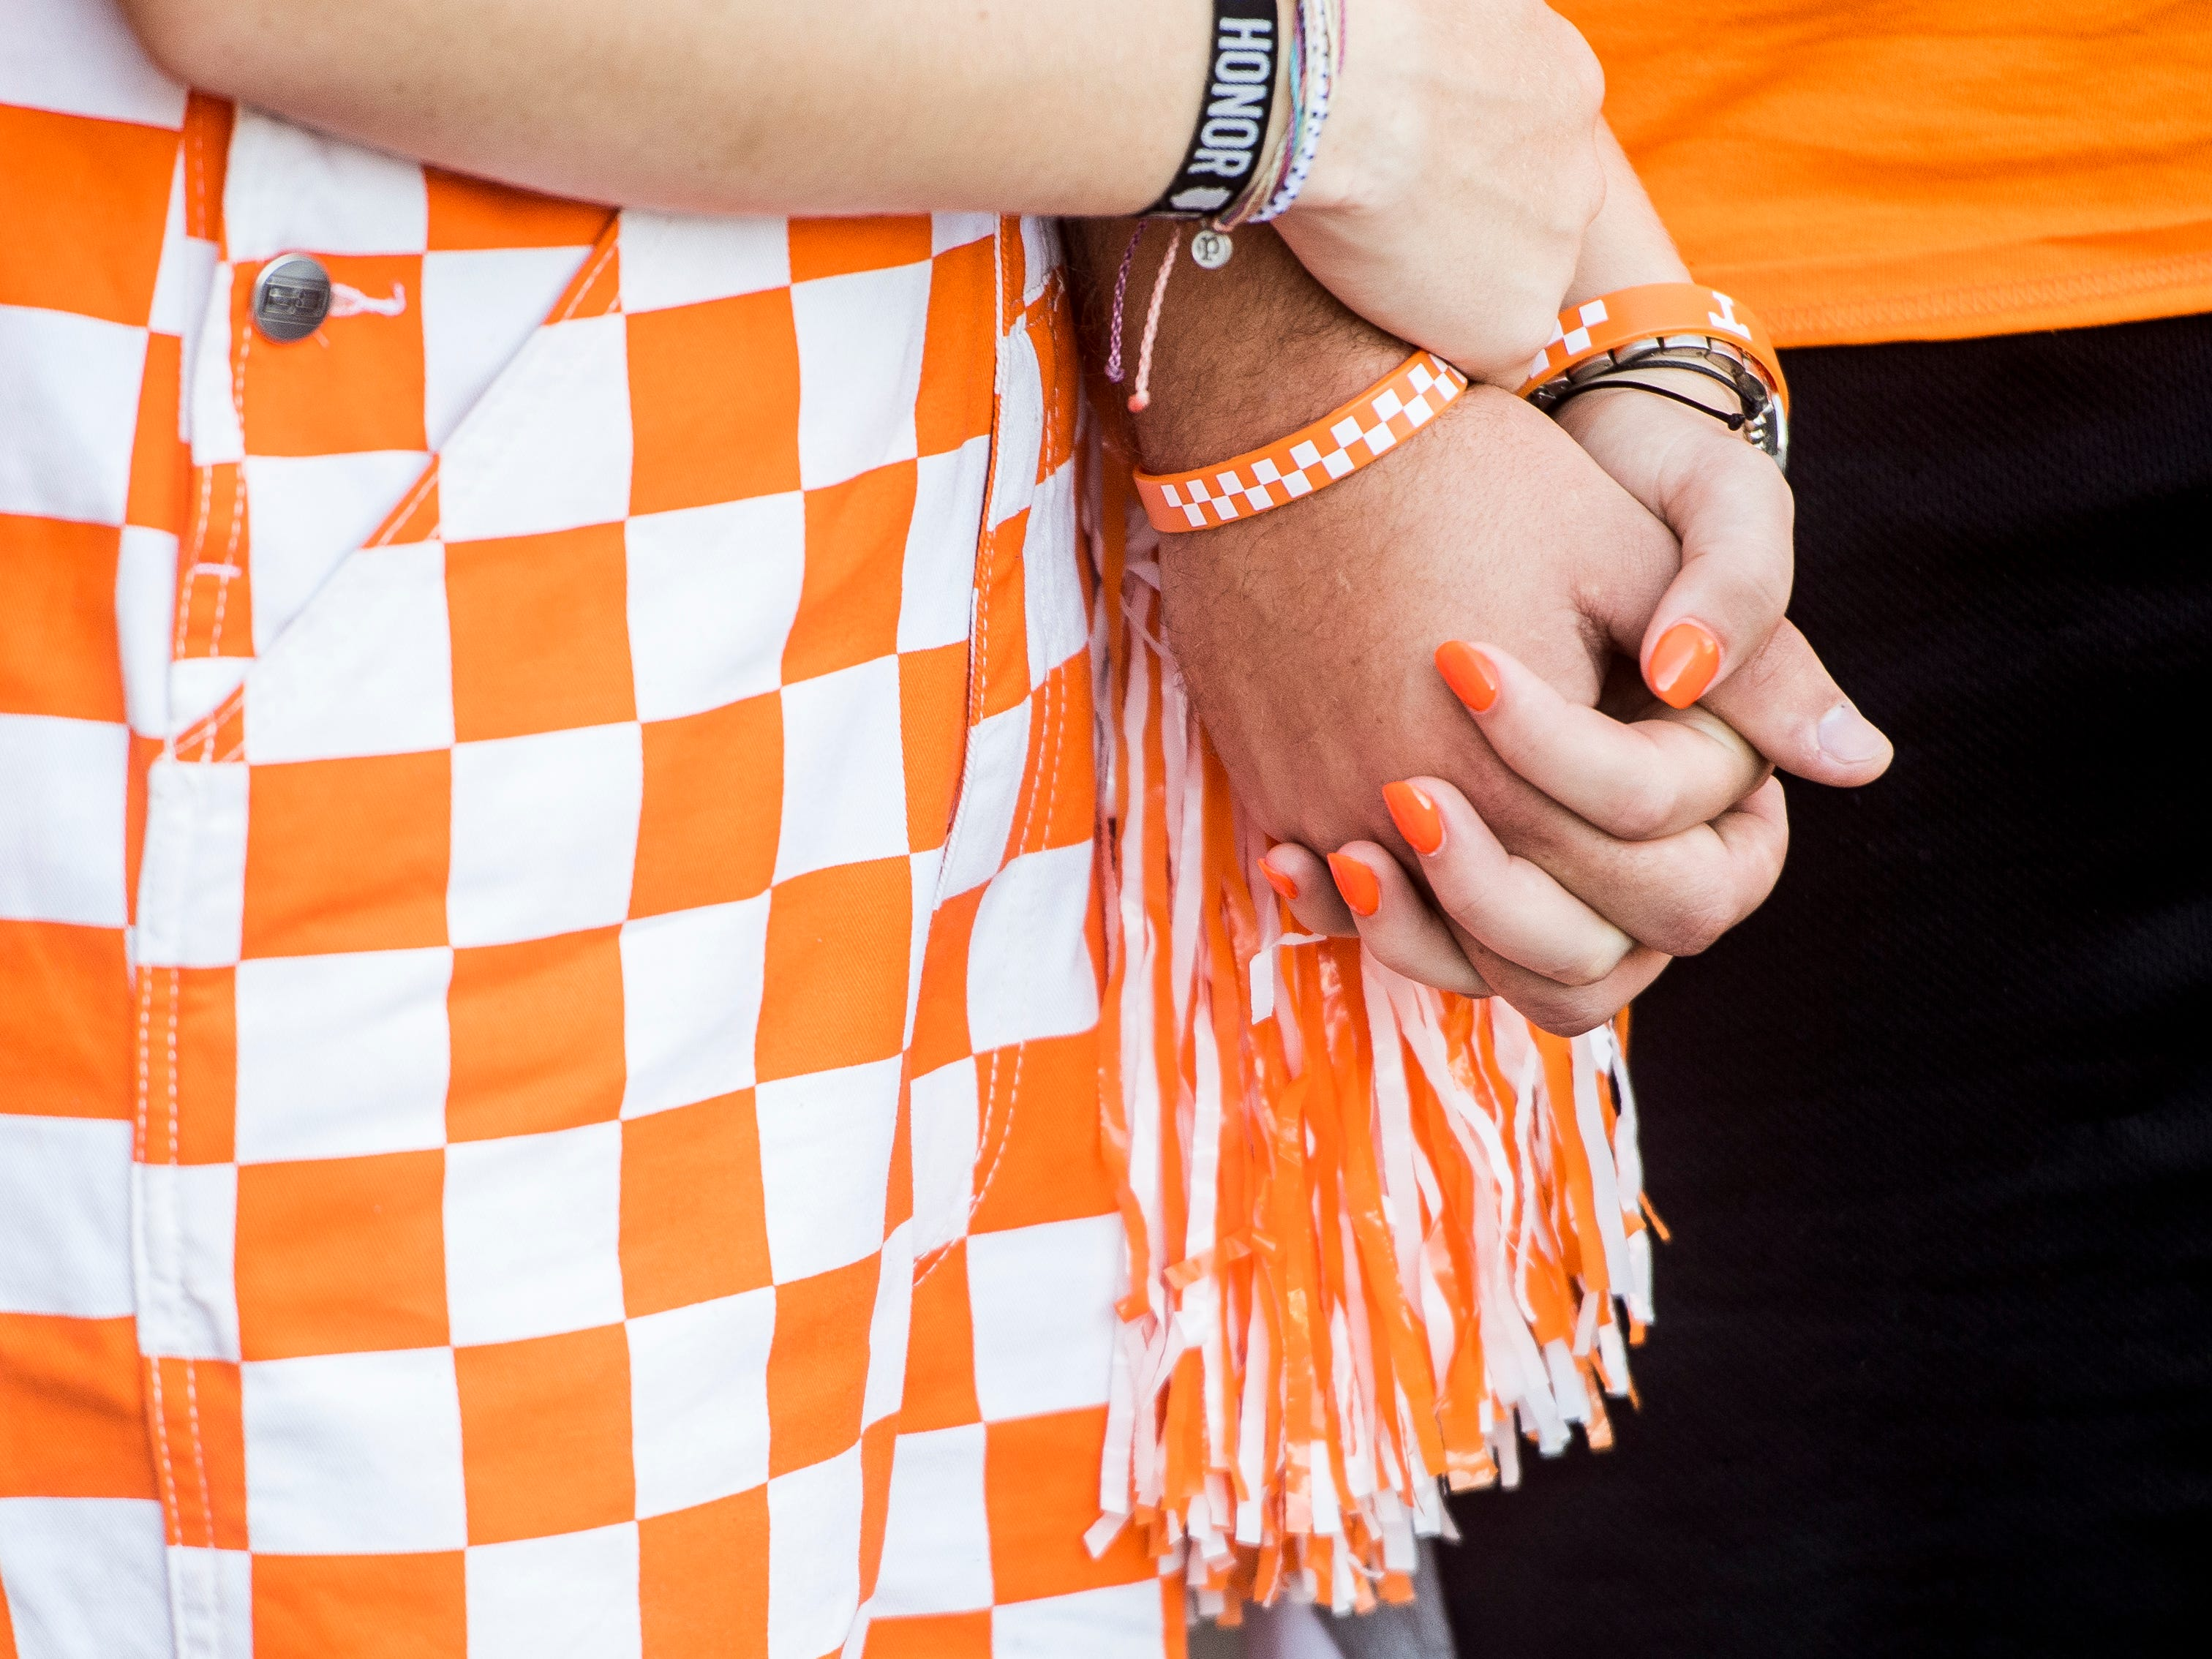 Tennessee fans hold hands during the Vol Walk before the Tennessee Volunteers' game against UTEP in Neyland Stadium on Saturday, Sept. 15, 2018.